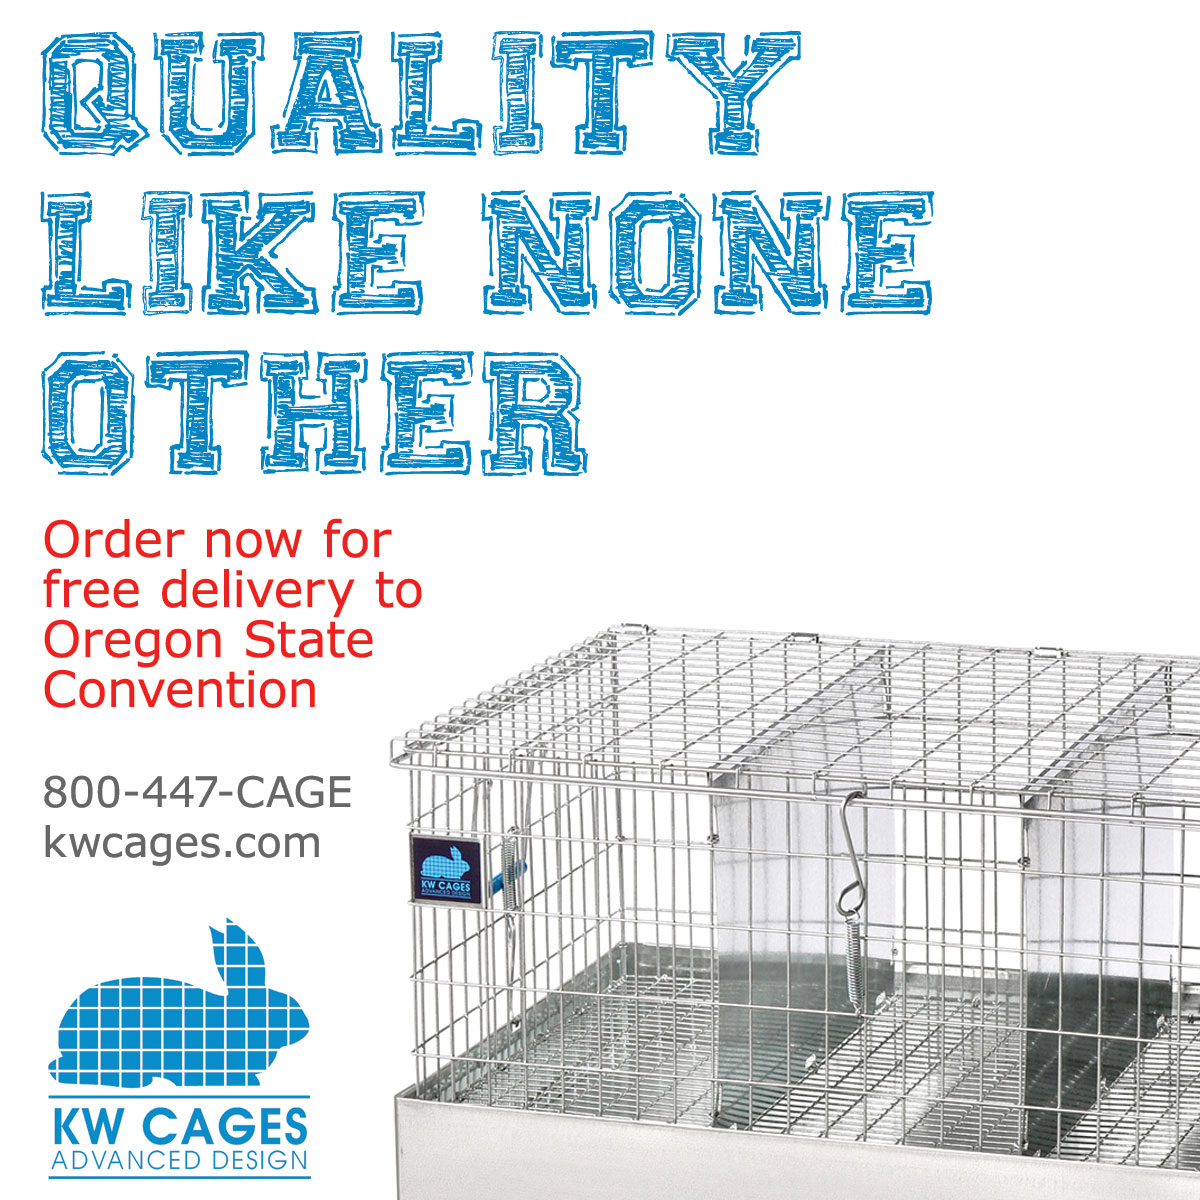 KW Cages